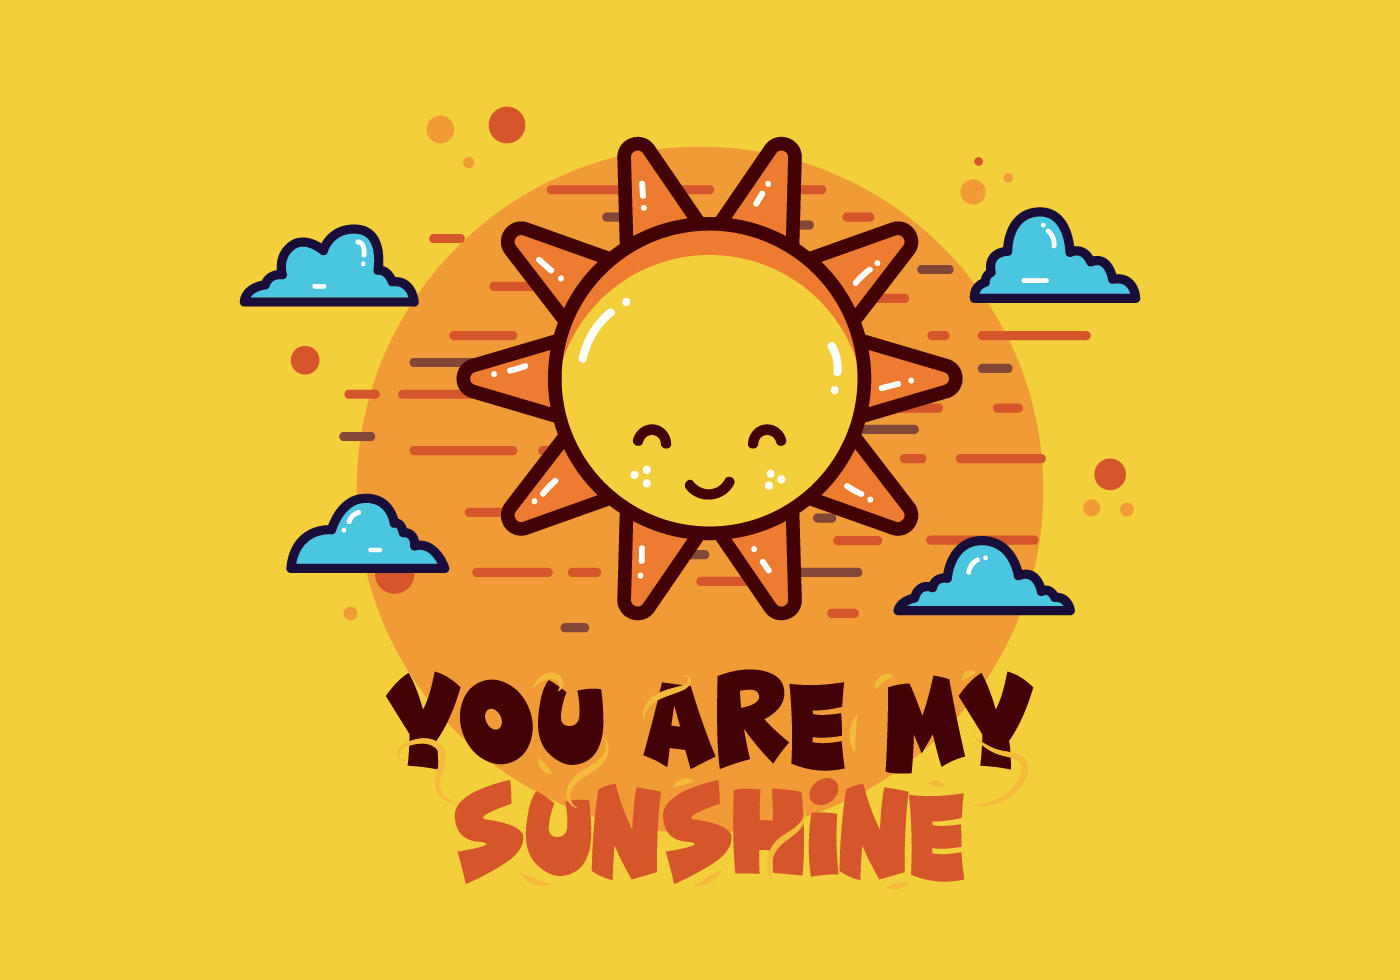 You are my sunshine vector - Download Free Vectors ...